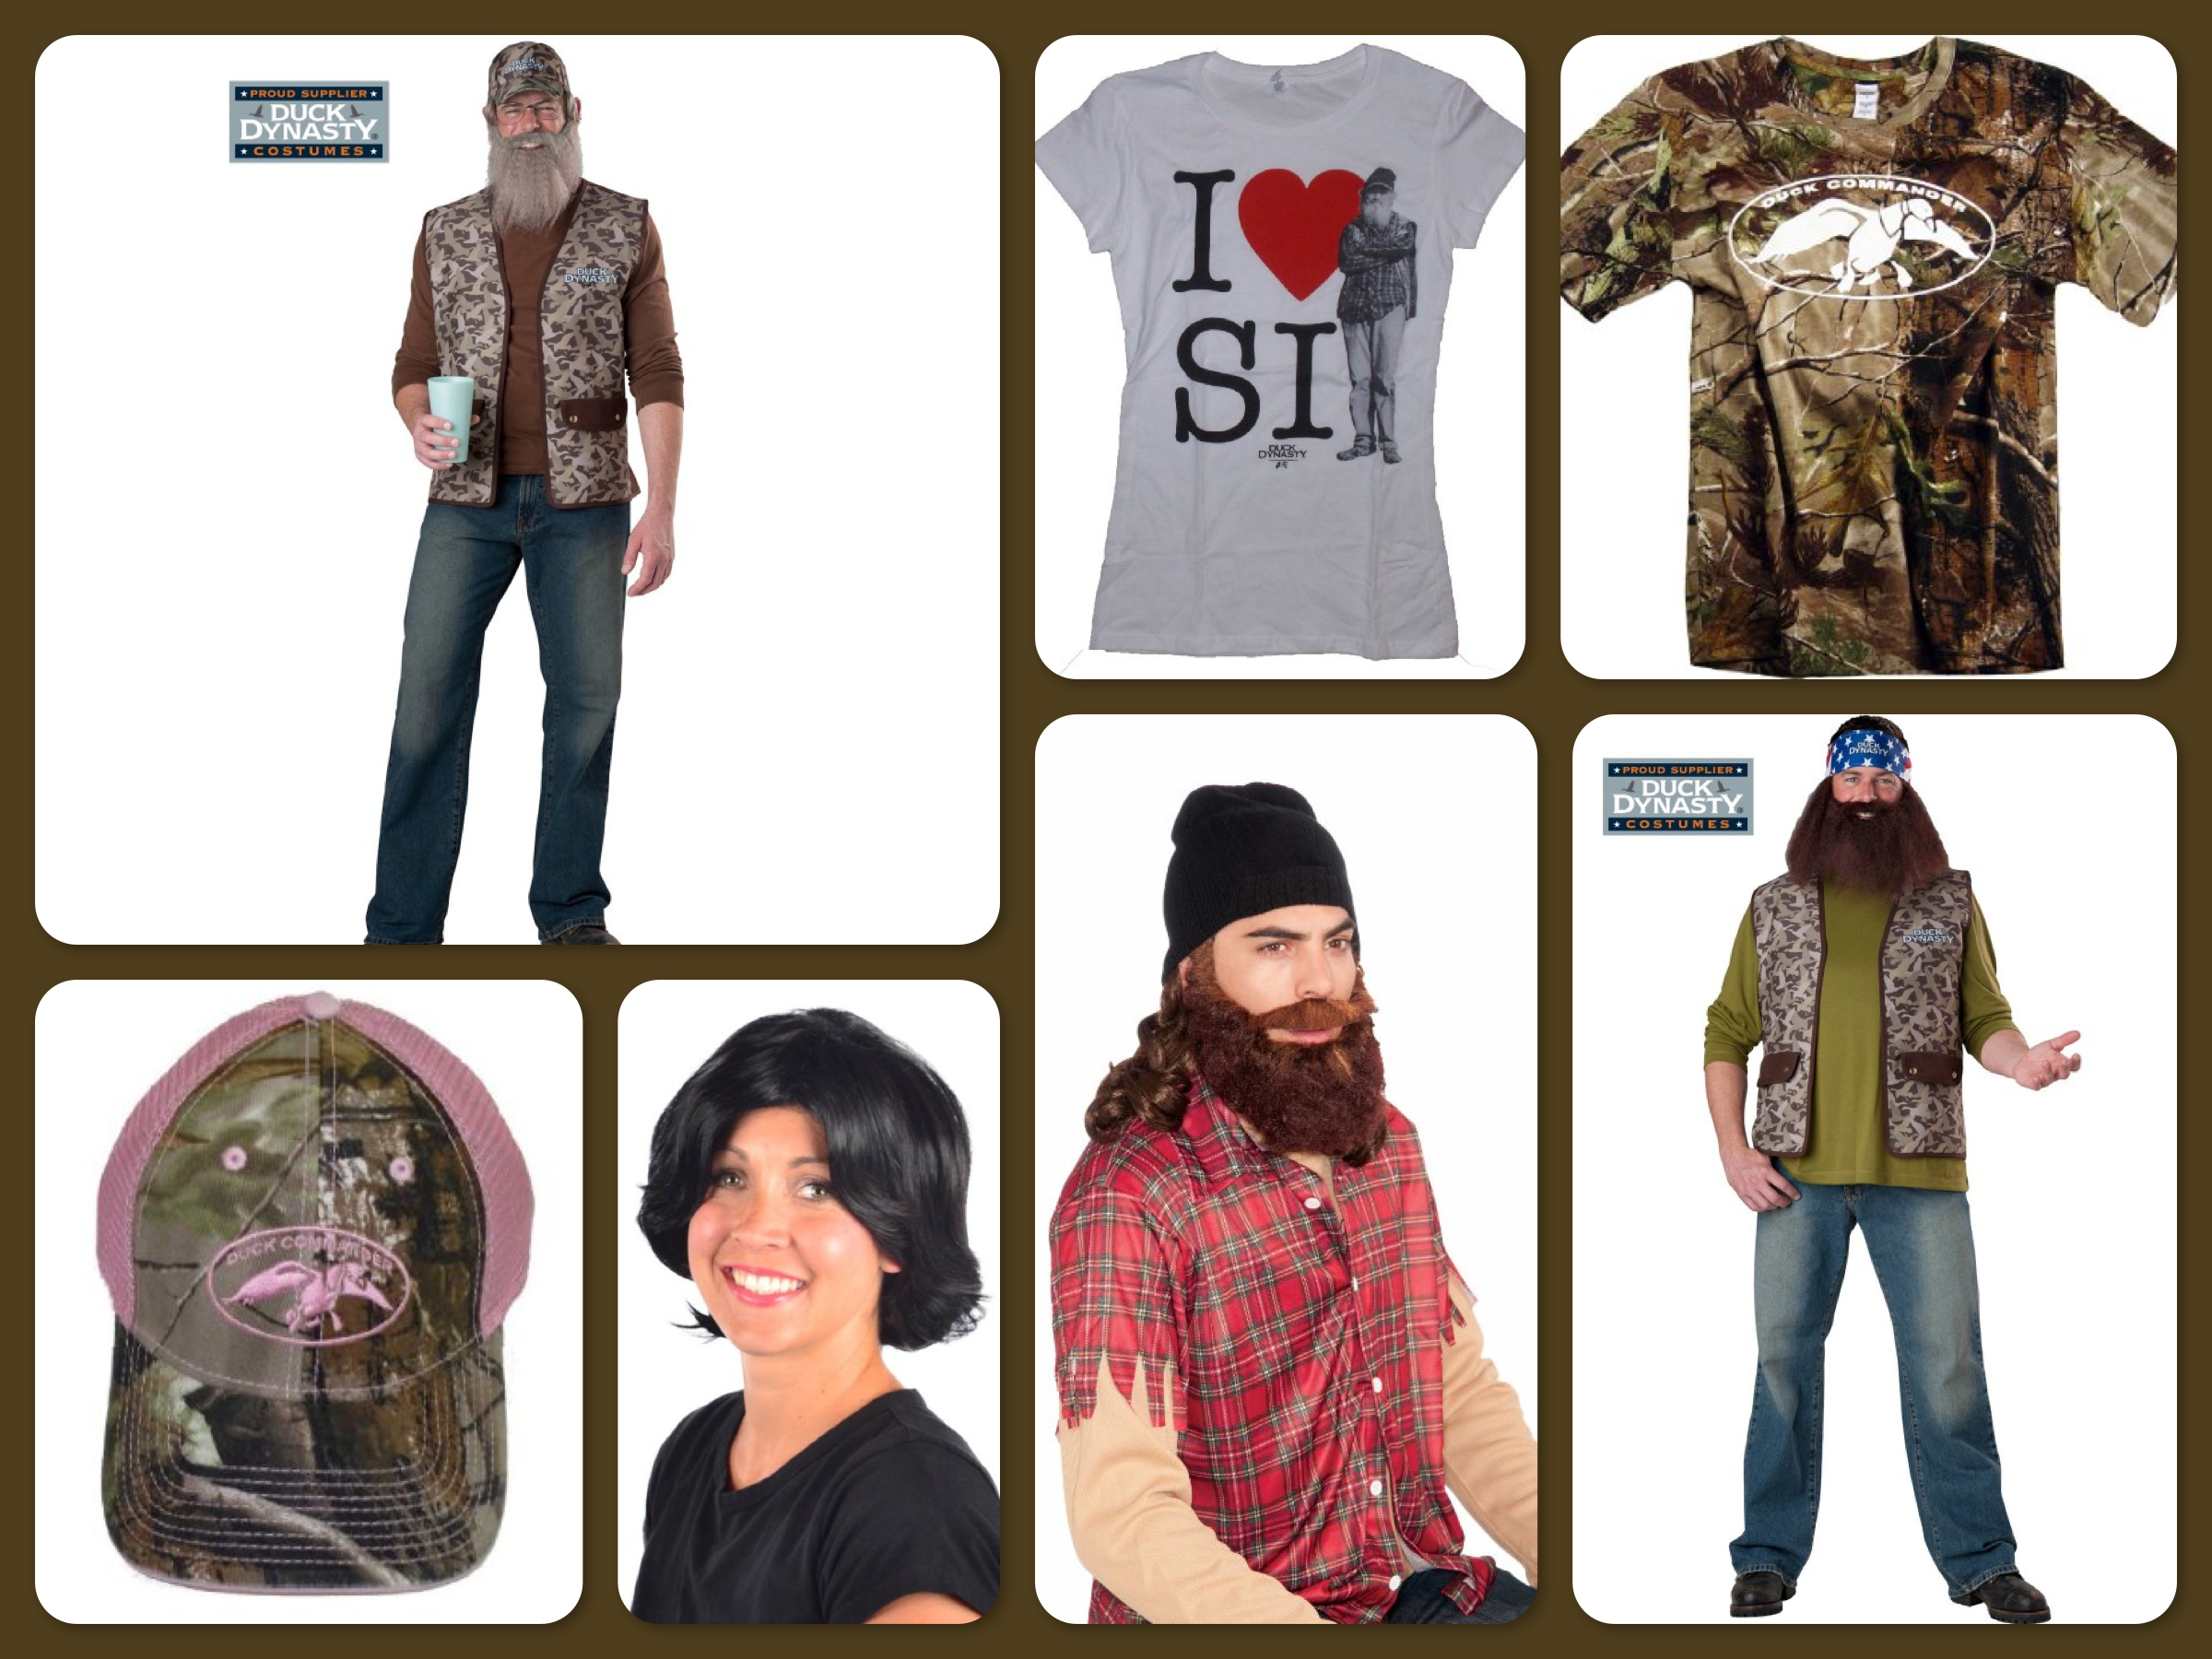 Halloween Costume Ideas | Duck Dynasty Group Costumes | GreatGets.com